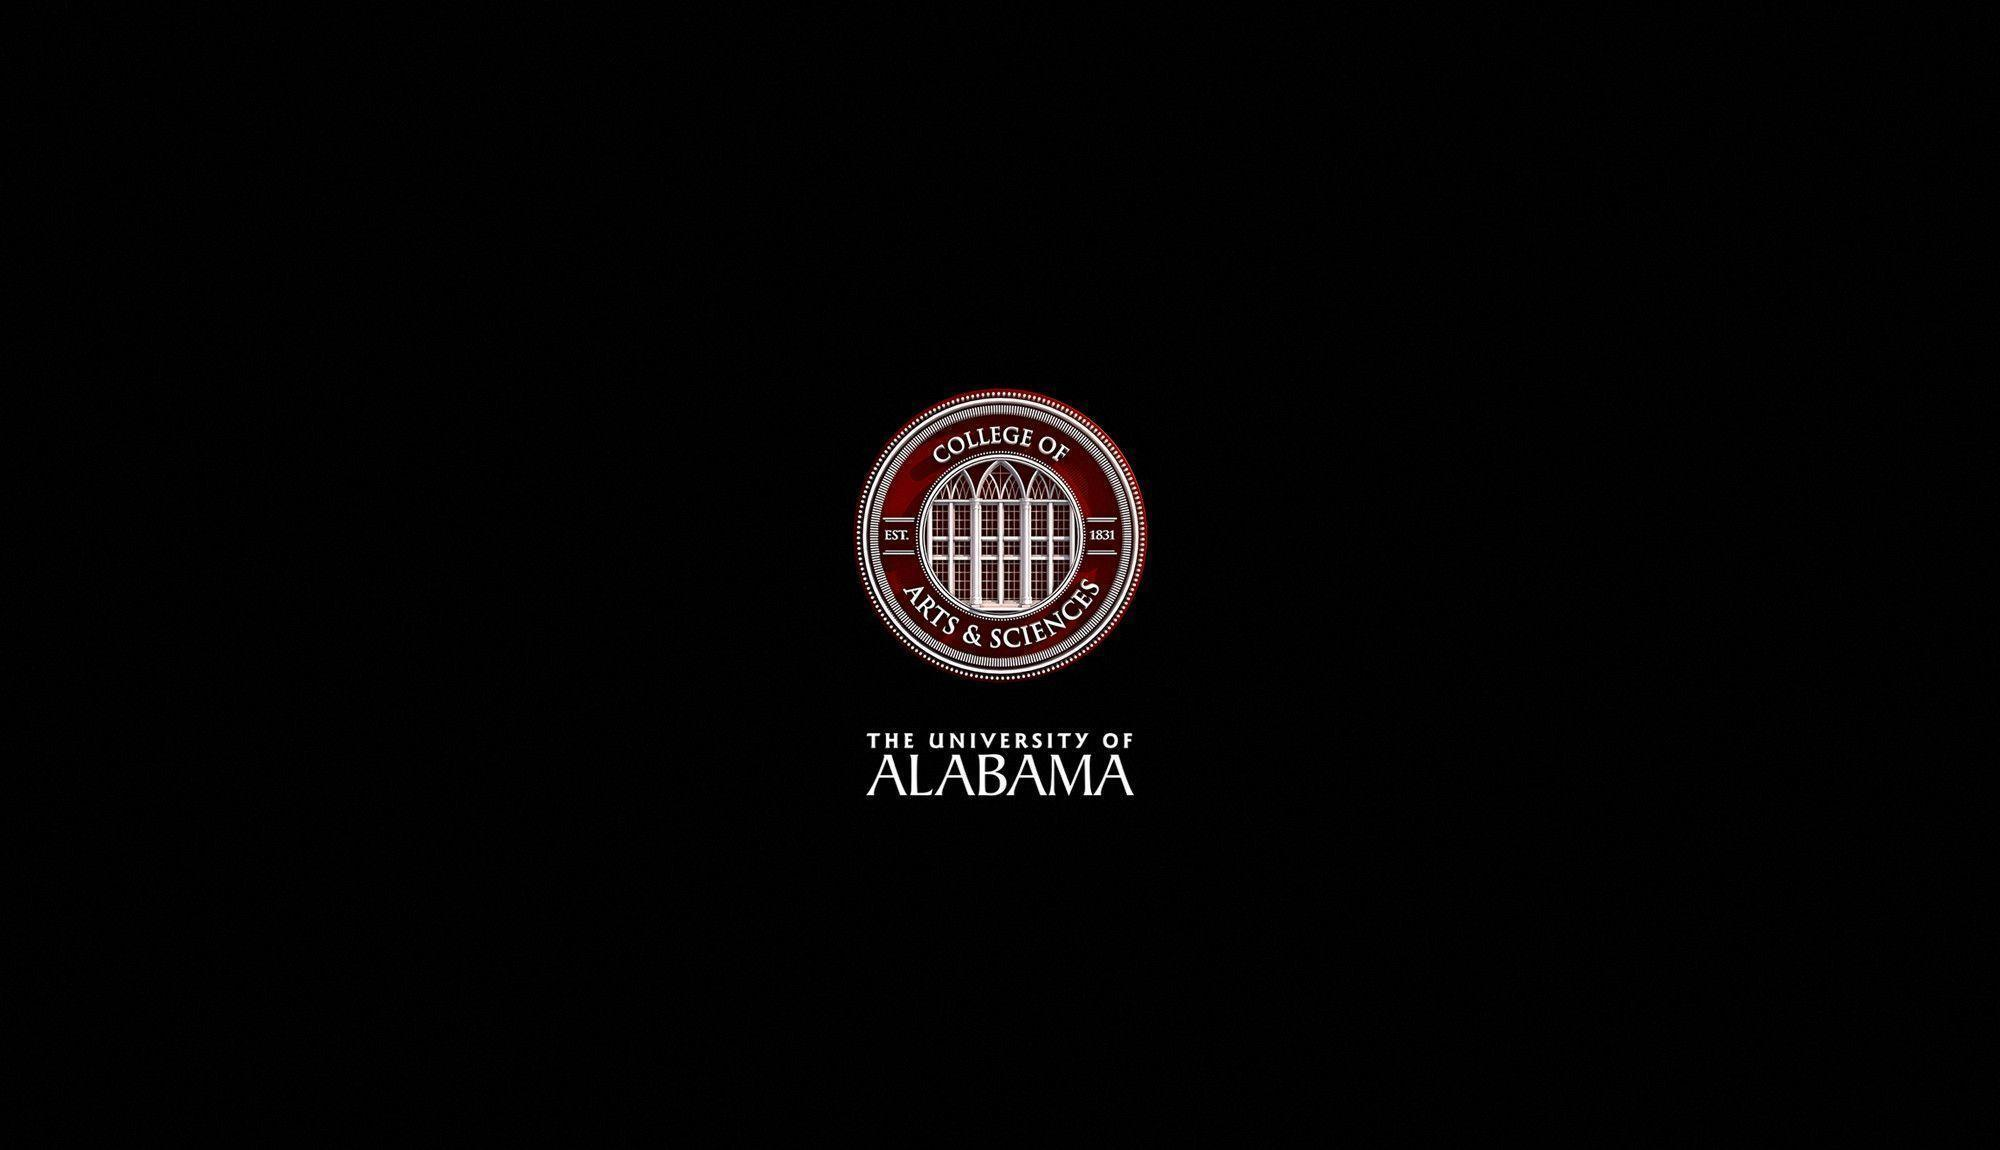 university of alabama wallpapers wallpaper cave